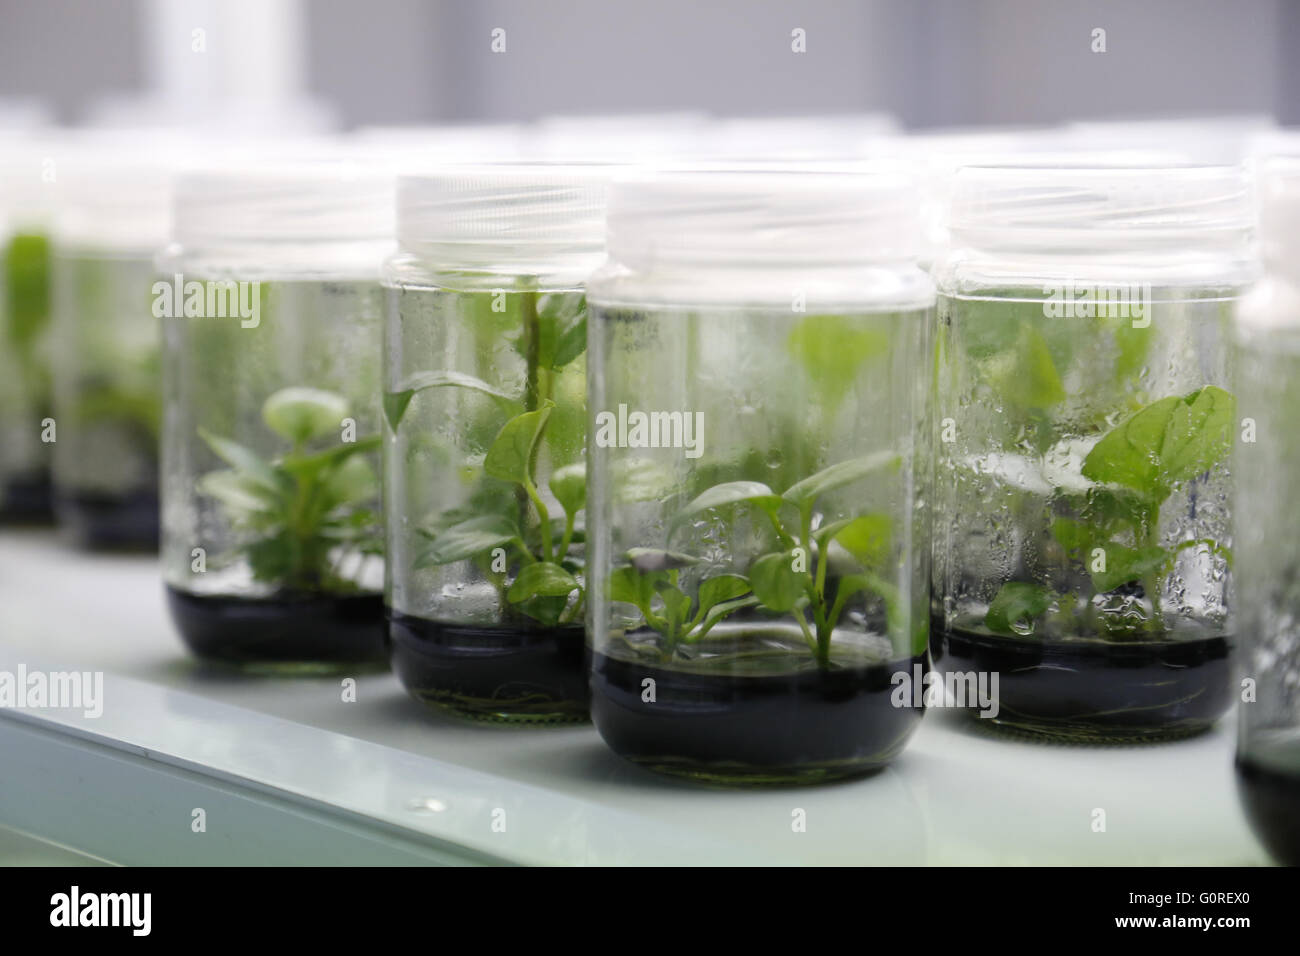 Experimental plants in glass jars in the lab. Growing plant specimens in the lab in sealed beakers for tests and - Stock Image